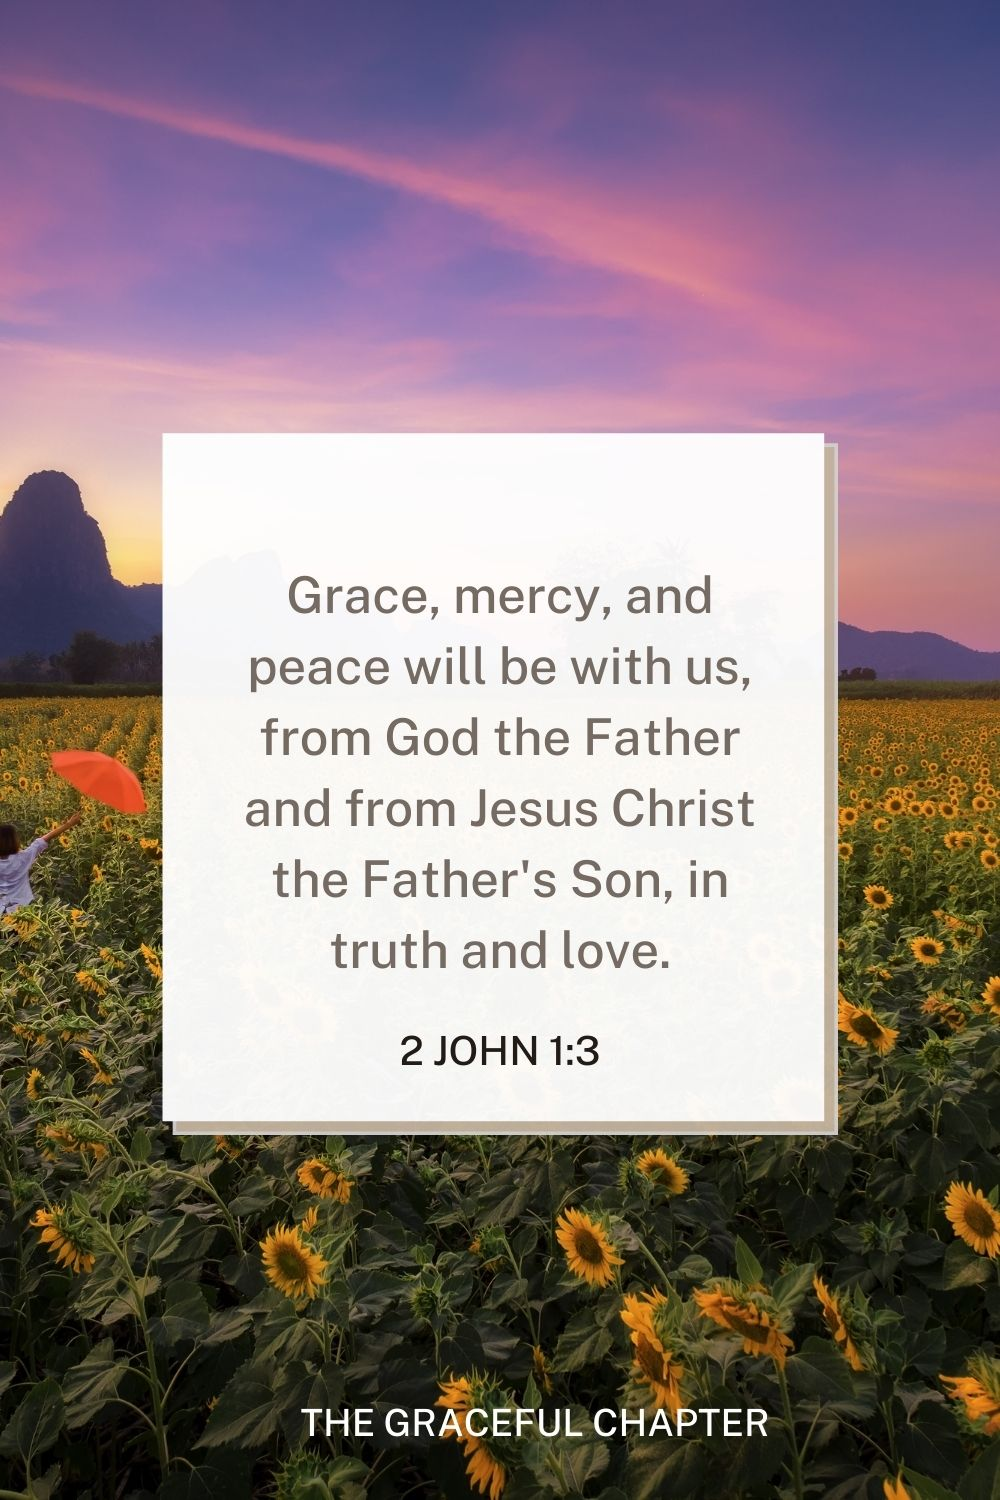 Grace, mercy, and peace will be with us, from God the Father and from Jesus Christ the Father's Son, in truth and love. 2 John 1:3